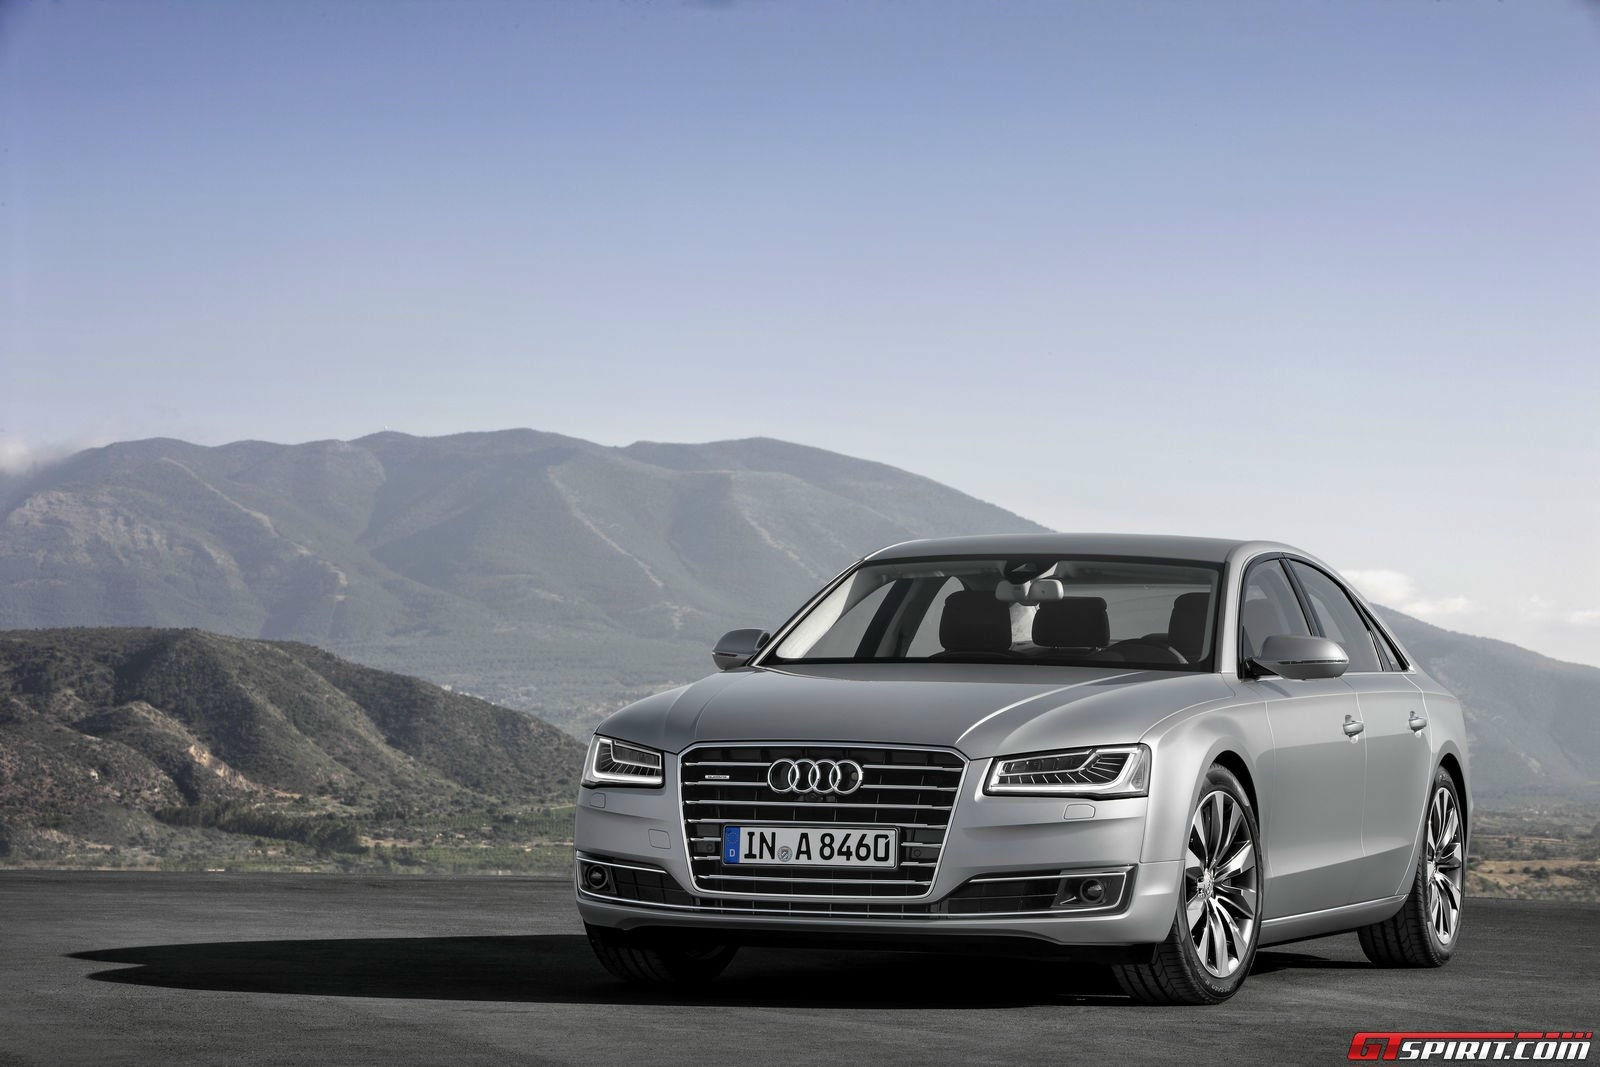 Audi A8 TFSI E HD Wallpapers Background Images Photos 1600x1067